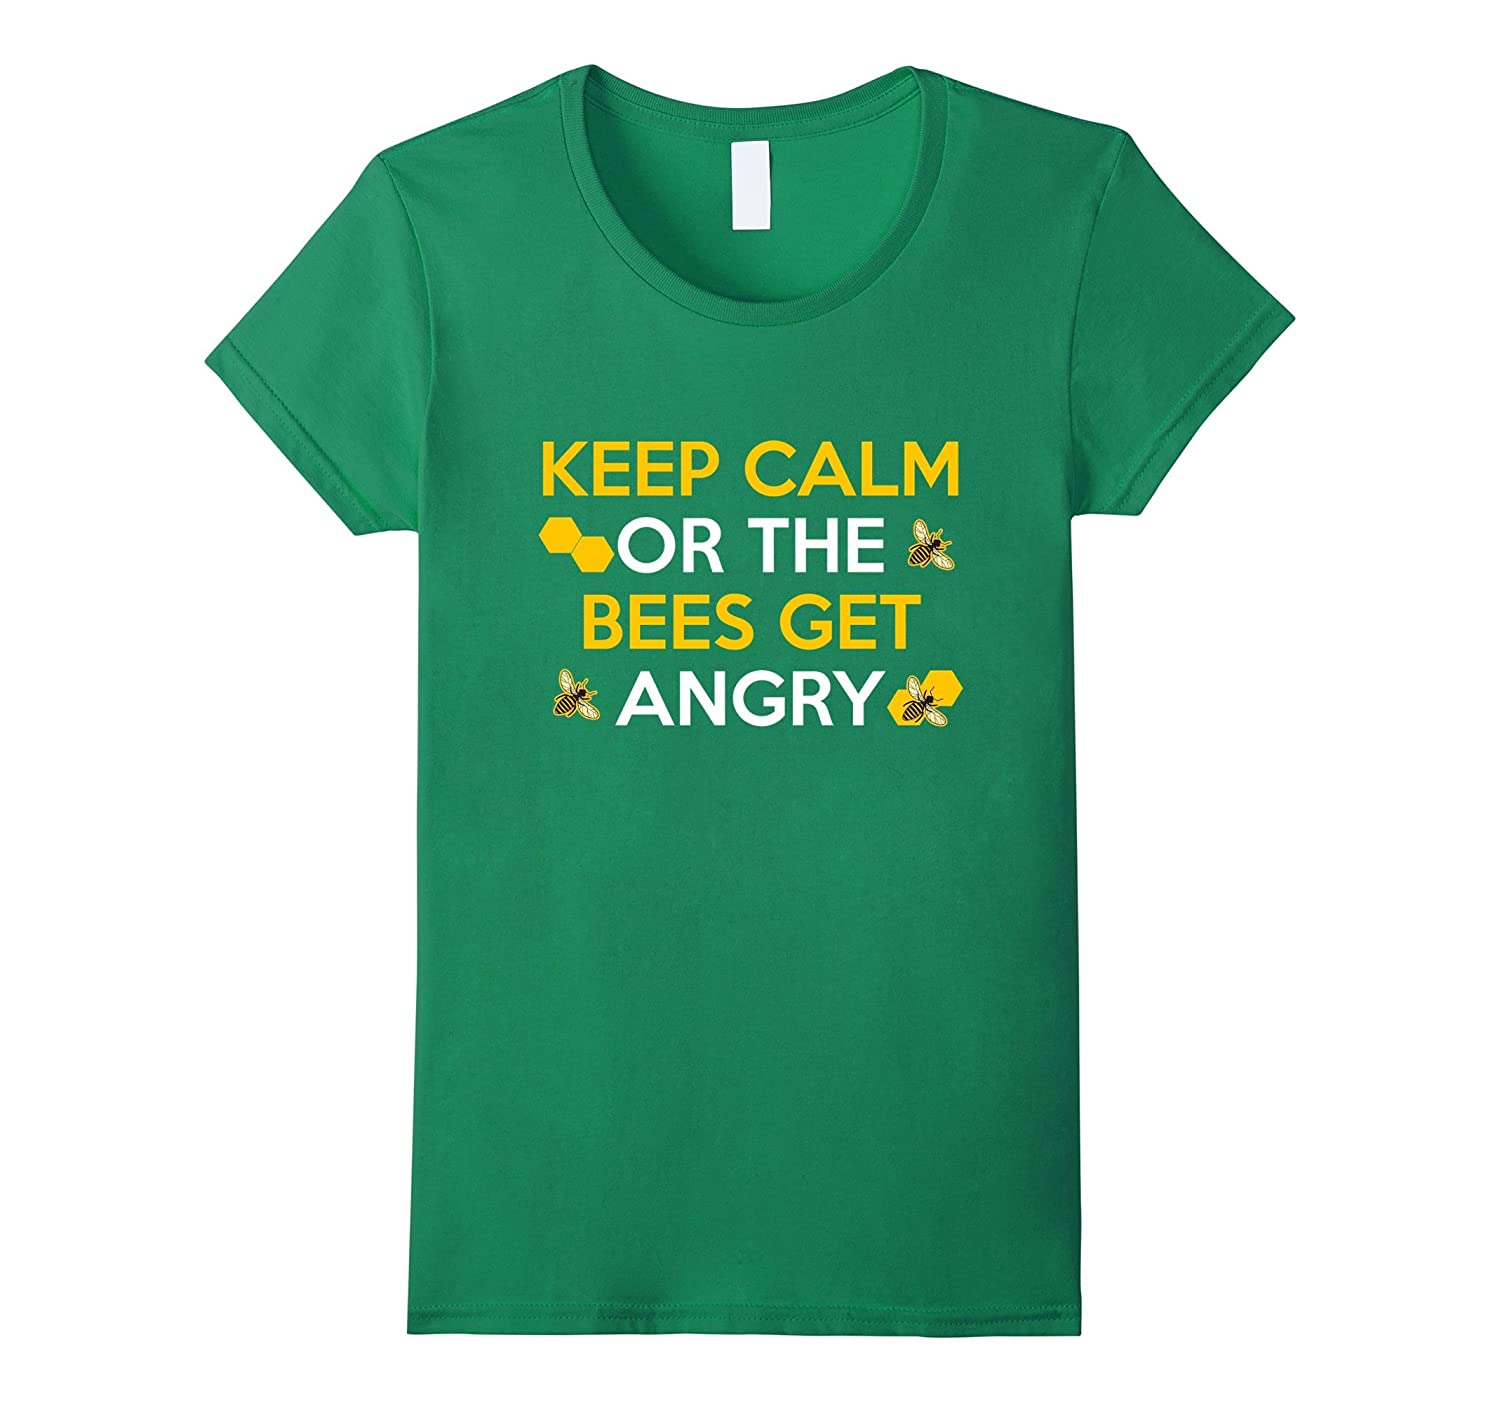 Beekeeper T-Shirt Beekeeper Gift KEEP CALM OR BEES GET ANGRY